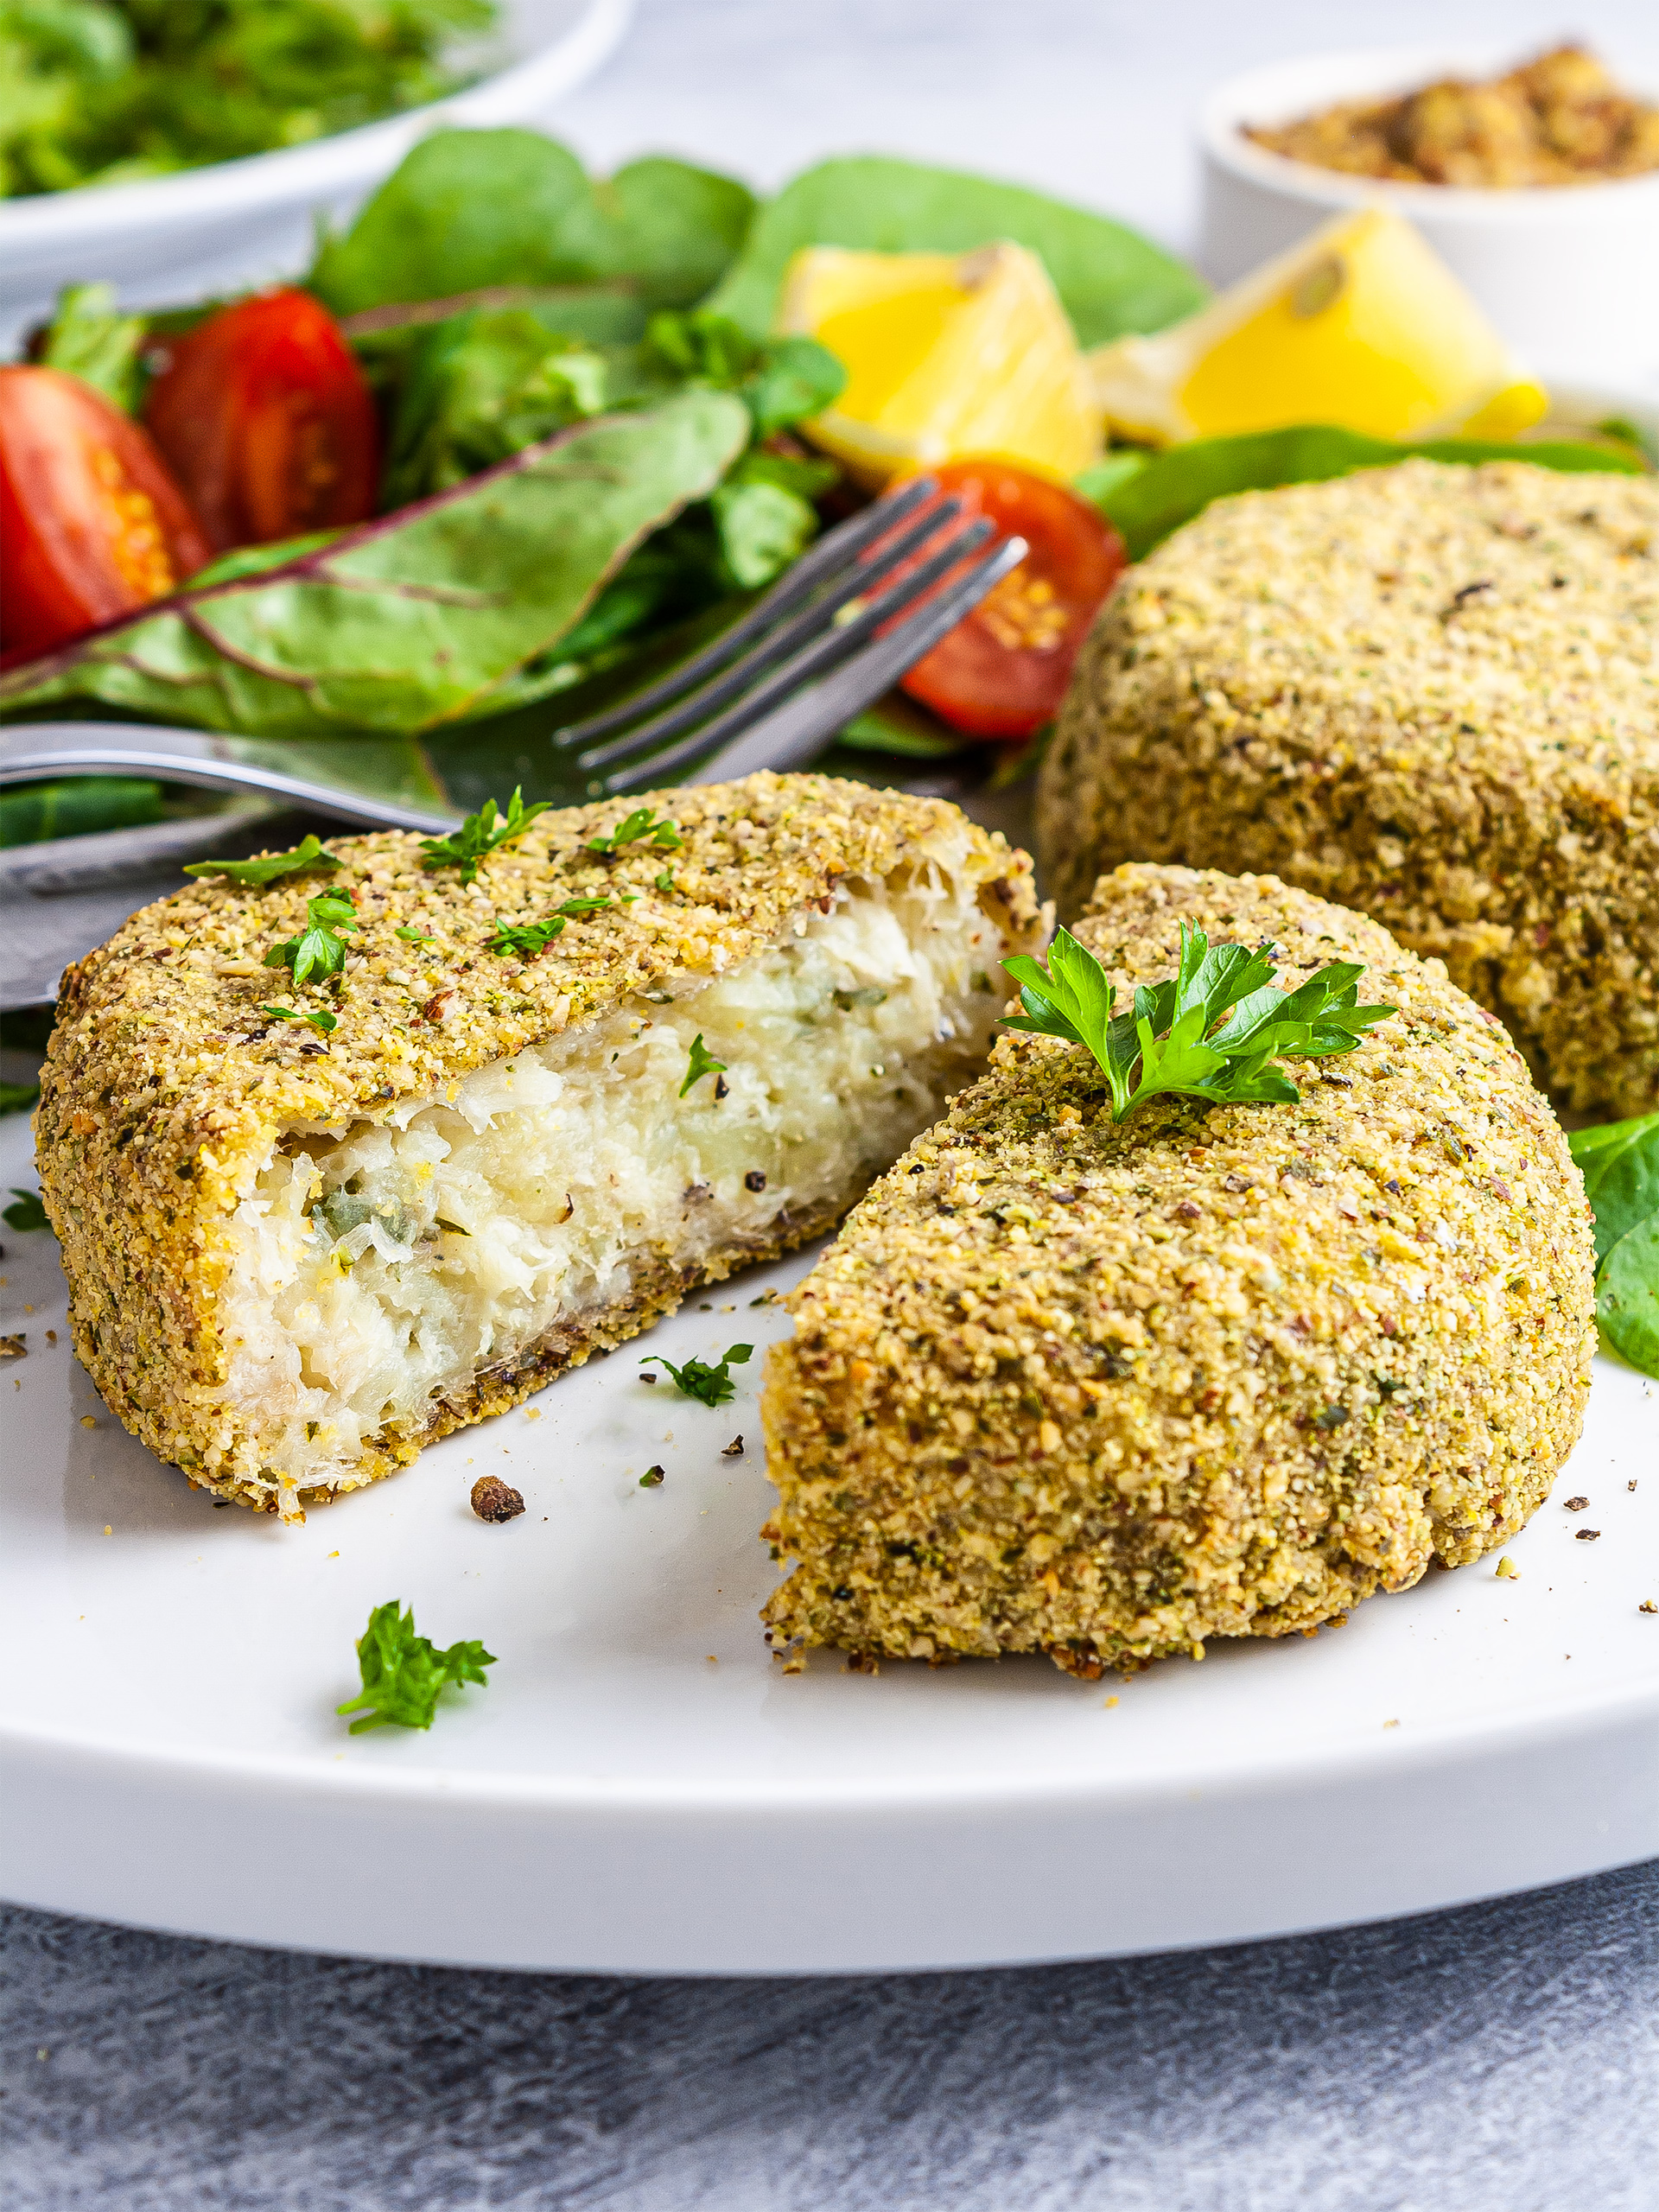 Gluten-Free Oven-Baked Fish Cakes Recipe Preview